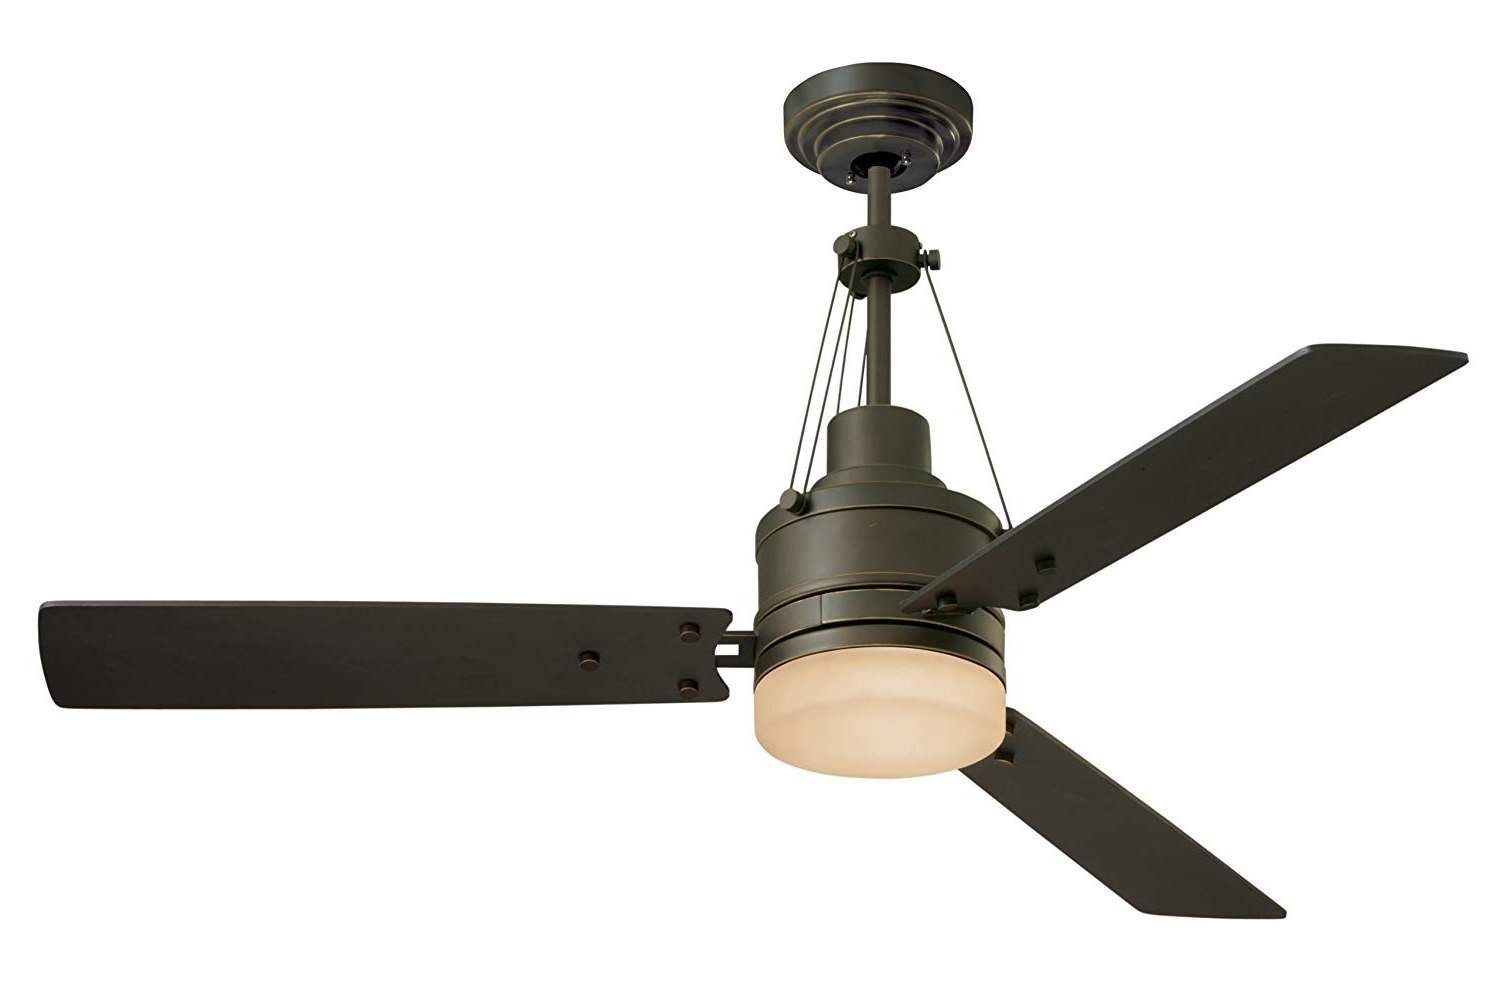 Appealing Emerson Ceiling Fans In Cf205Ges Fan With Light And Remote Regarding Most Popular Amazon Outdoor Ceiling Fans With Lights (Gallery 14 of 20)